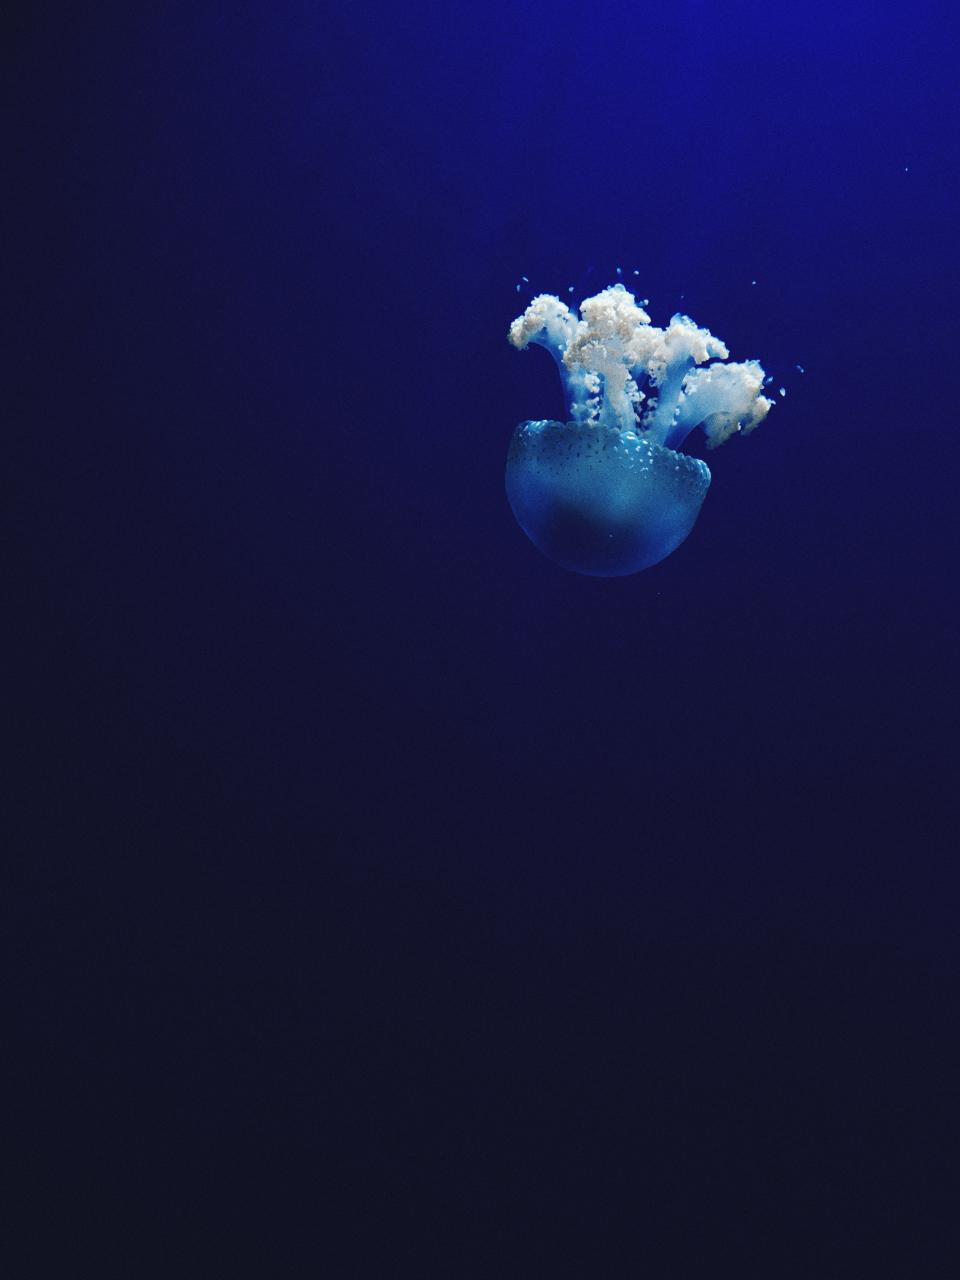 sea ocean water blue jellyfish aquatic animal